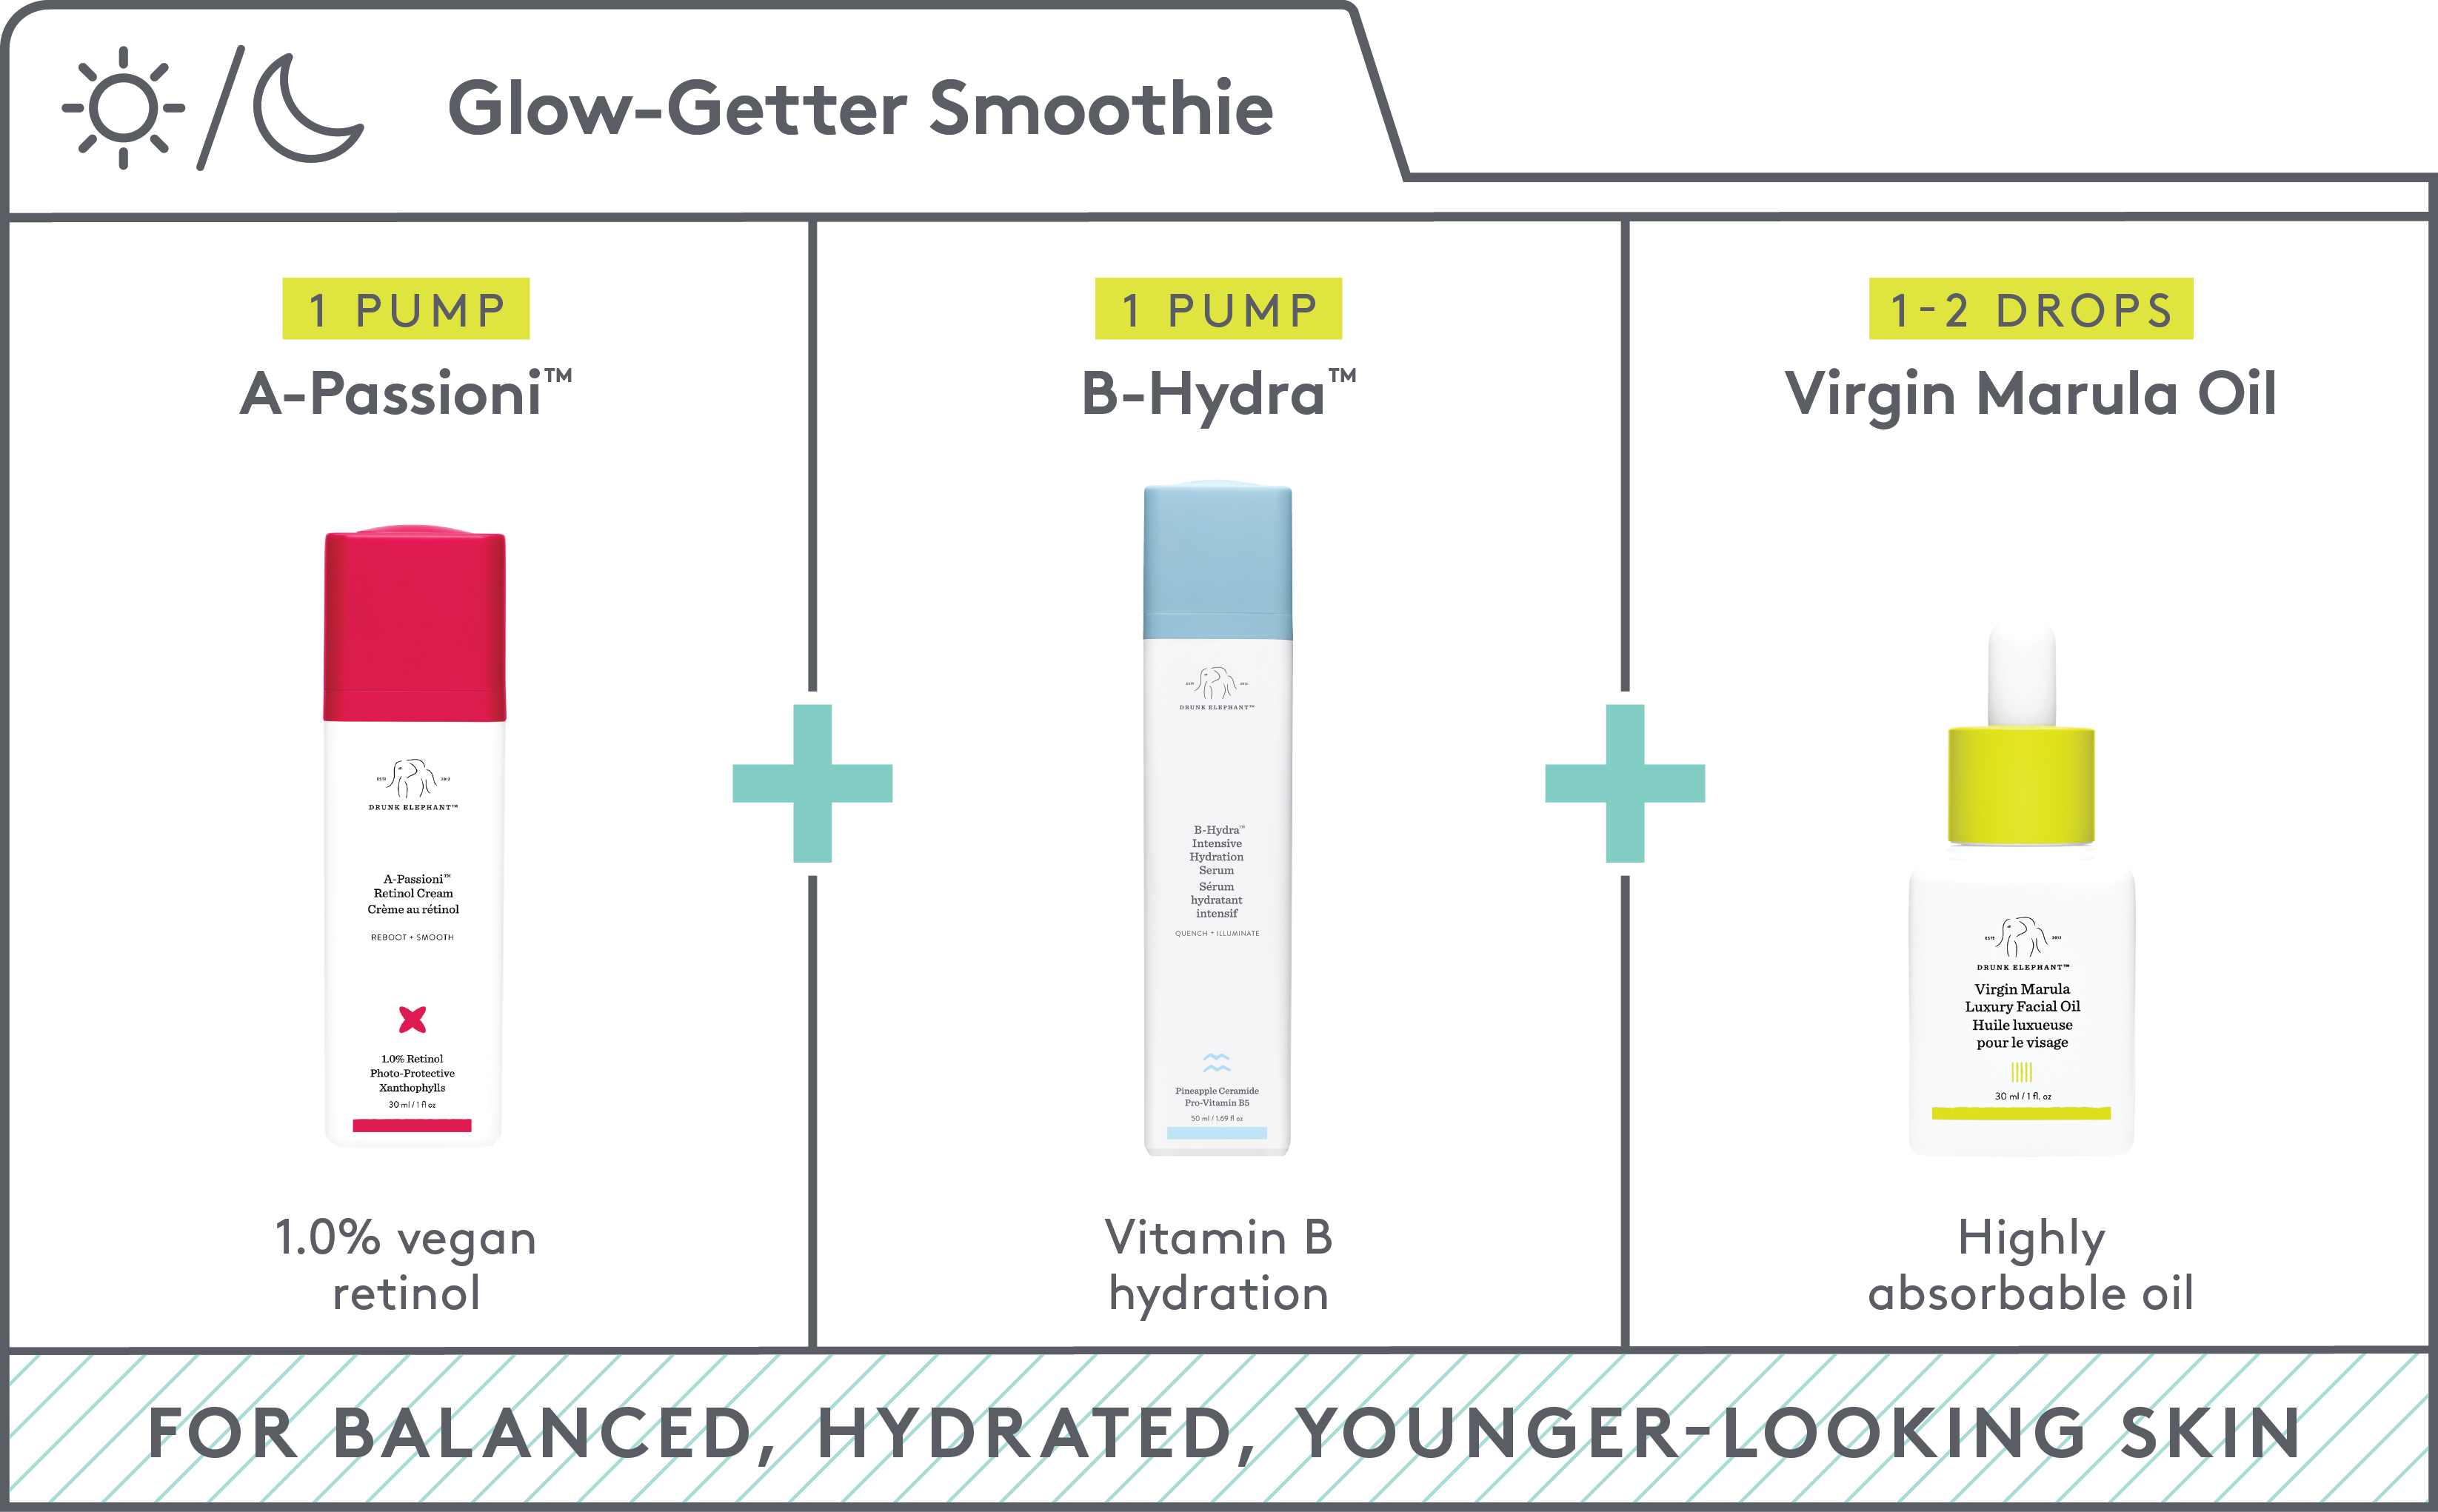 Glow-Getter Smoothie